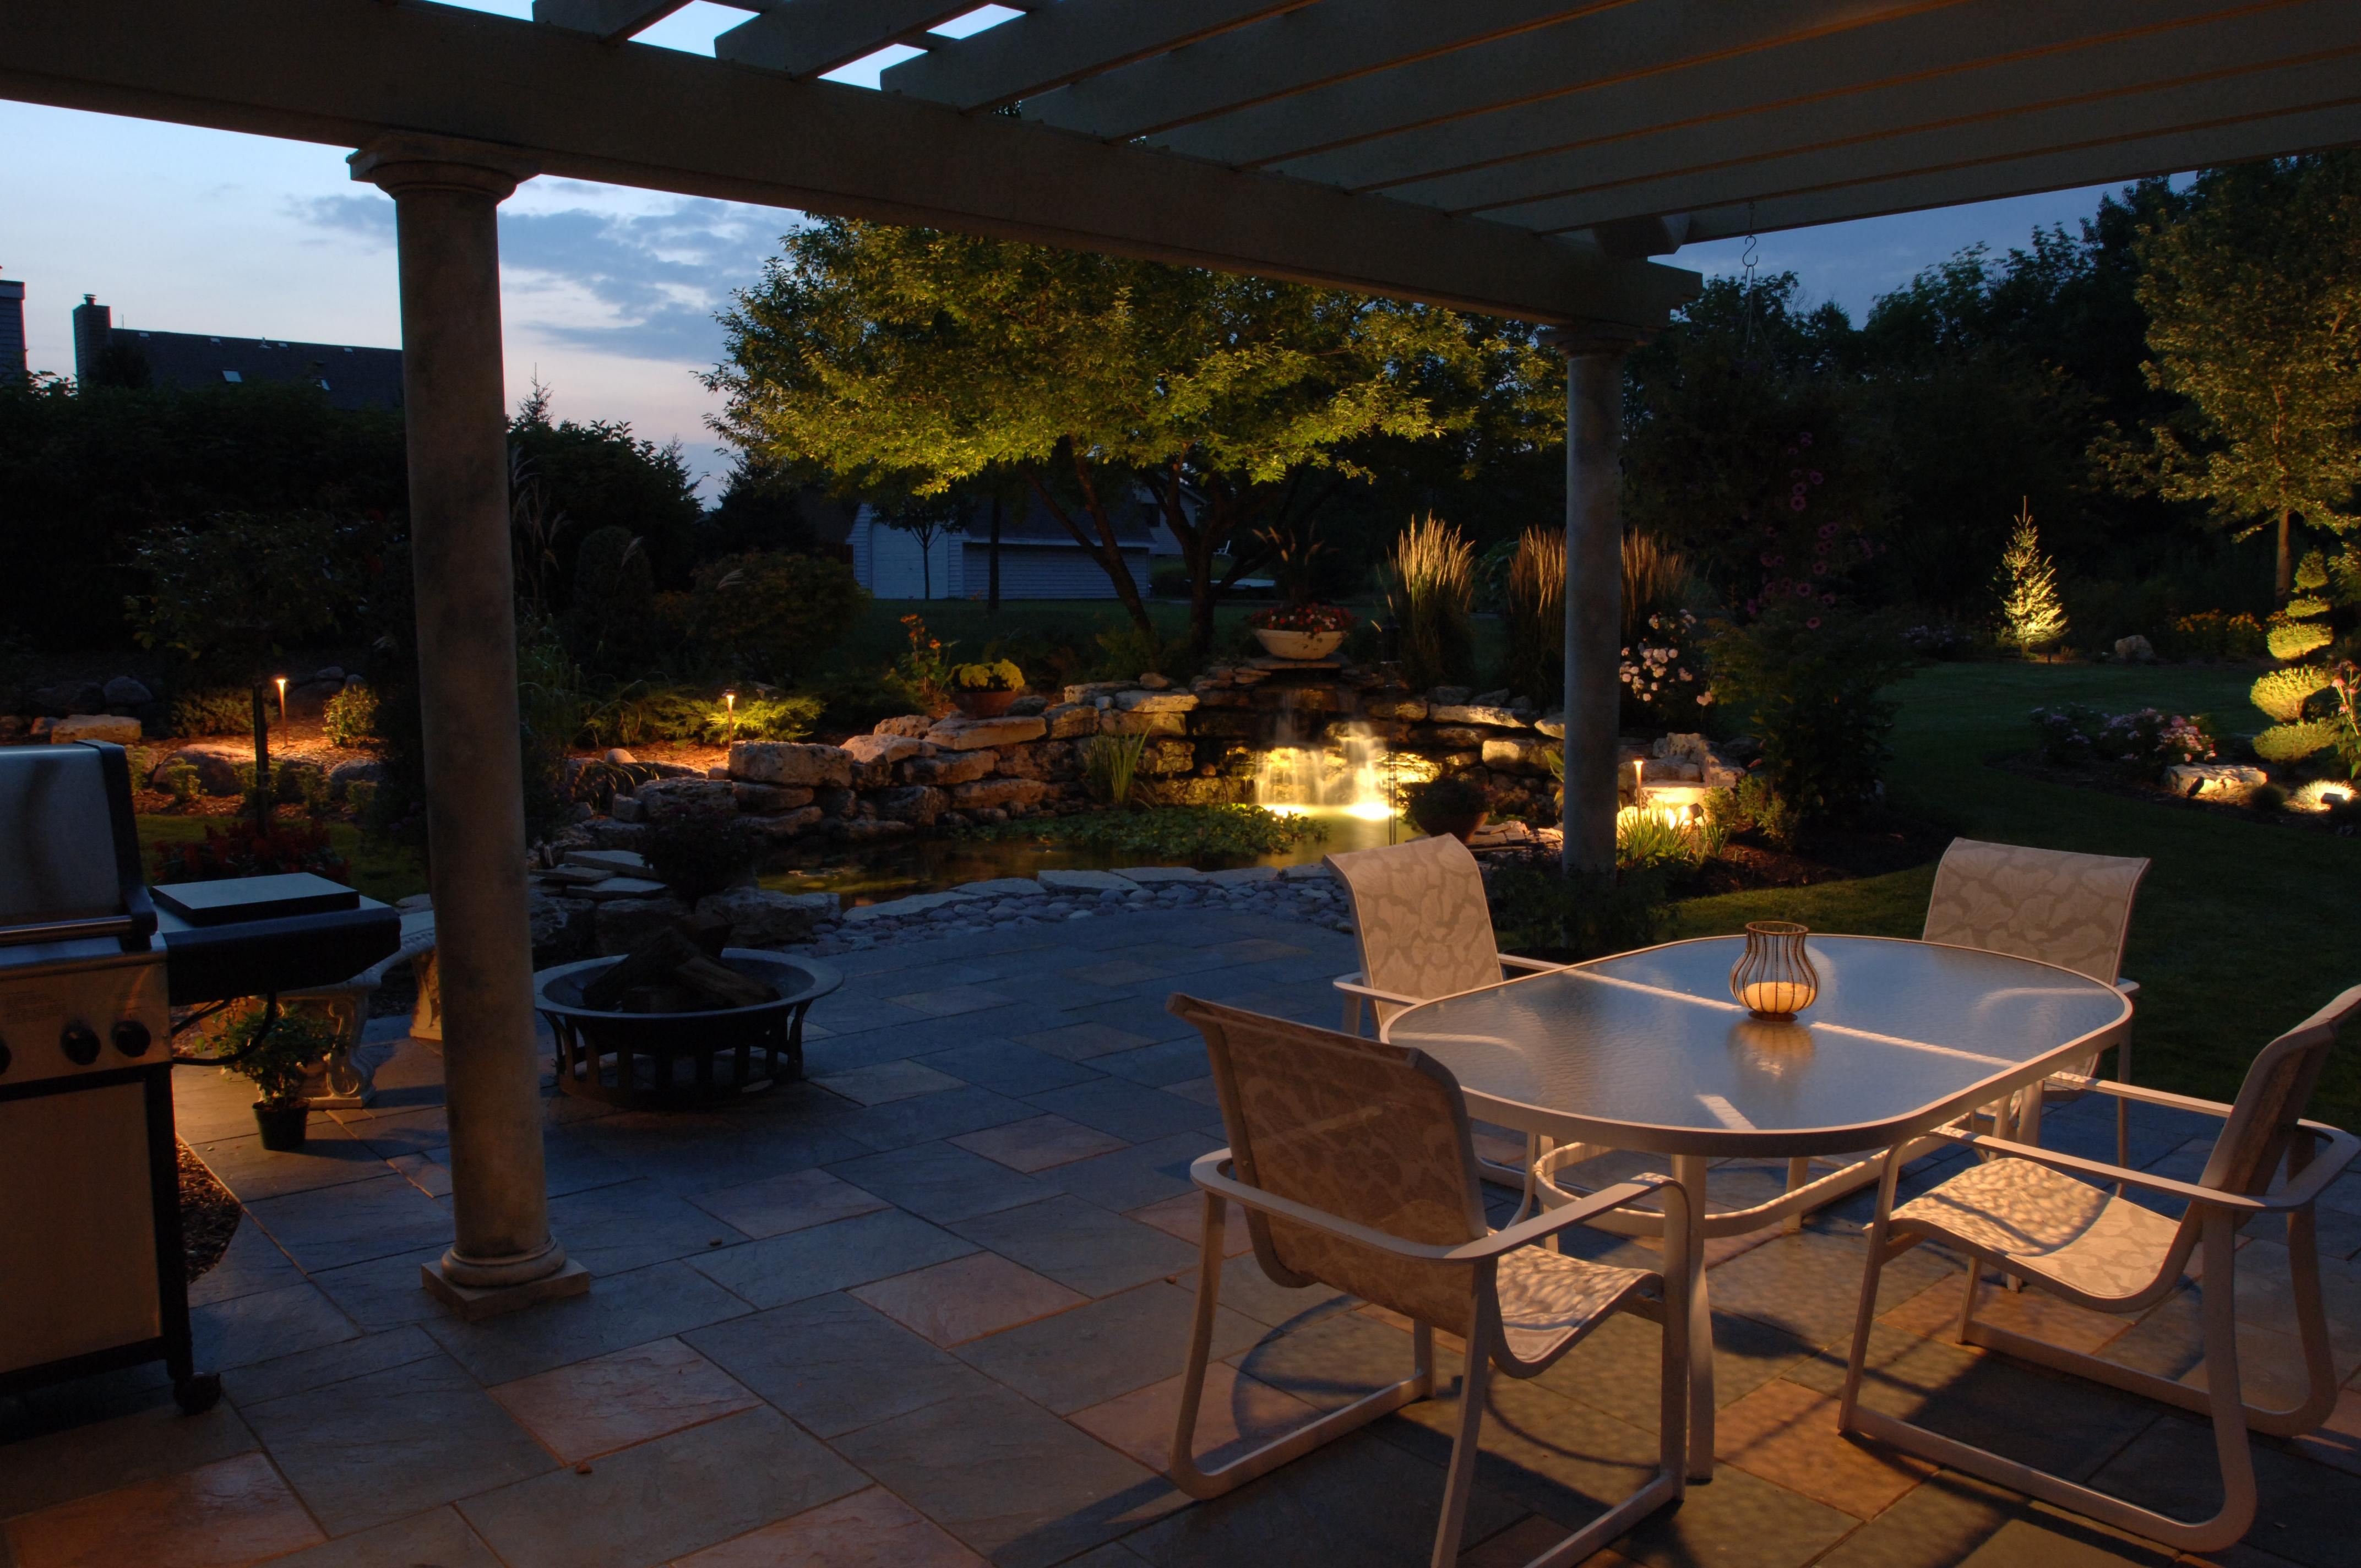 Homeowners Have Many Ways To Enhance Their Own Backyardsu2014through  Landscaping, Outdoor Lighting, Decks, And Patiosu2014that Can Provide